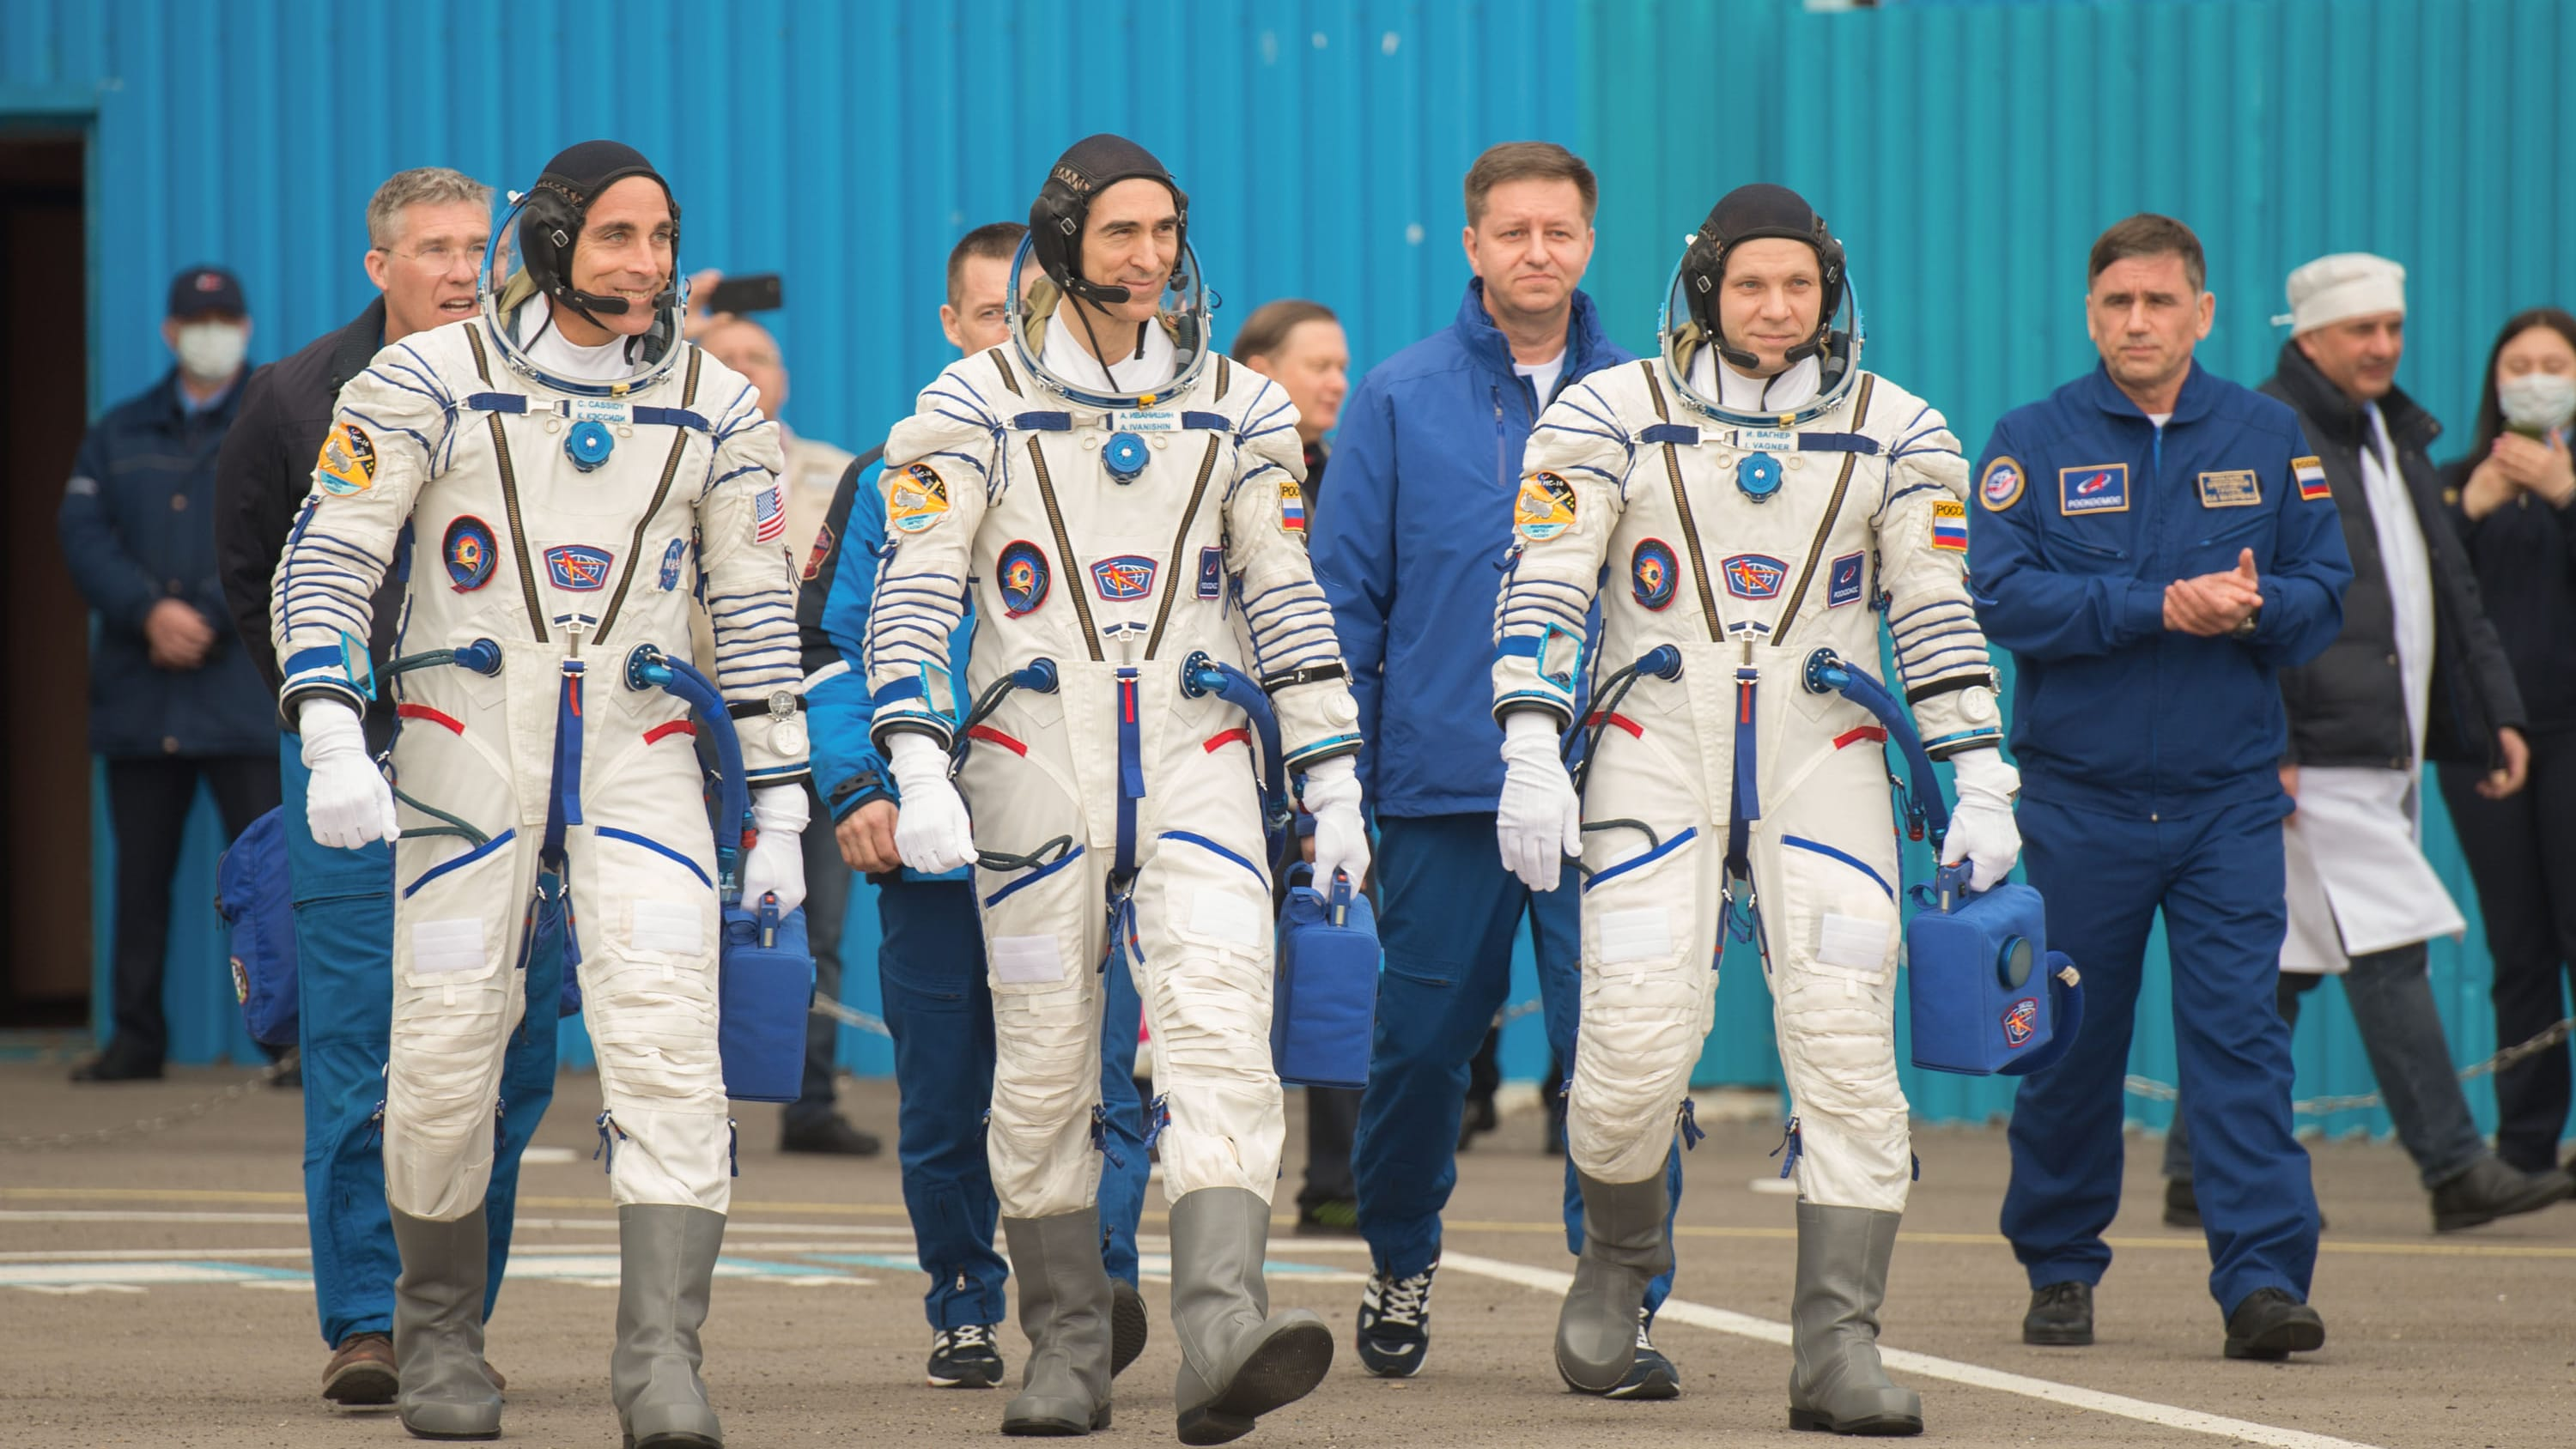 AMONG THE STARS - Expedition 63 crewmembers Chris Cassidy of NASA, left, Anatoly Ivanishin, center, and Ivan Vagner of Roscosmos, depart building 254 for the launch pad, Thursday, April 9, 2020 at the Baikonur Cosmodrome in Kazakhstan. A few hours later, they lifted off on a Soyuz rocket for a six-and-a-half month mission on the International Space Station. (NASA/GCTC/Andrey Shelepin) CHRIS CASSIDY, ANATOLY IVANISHIN, IVAN VAGNER